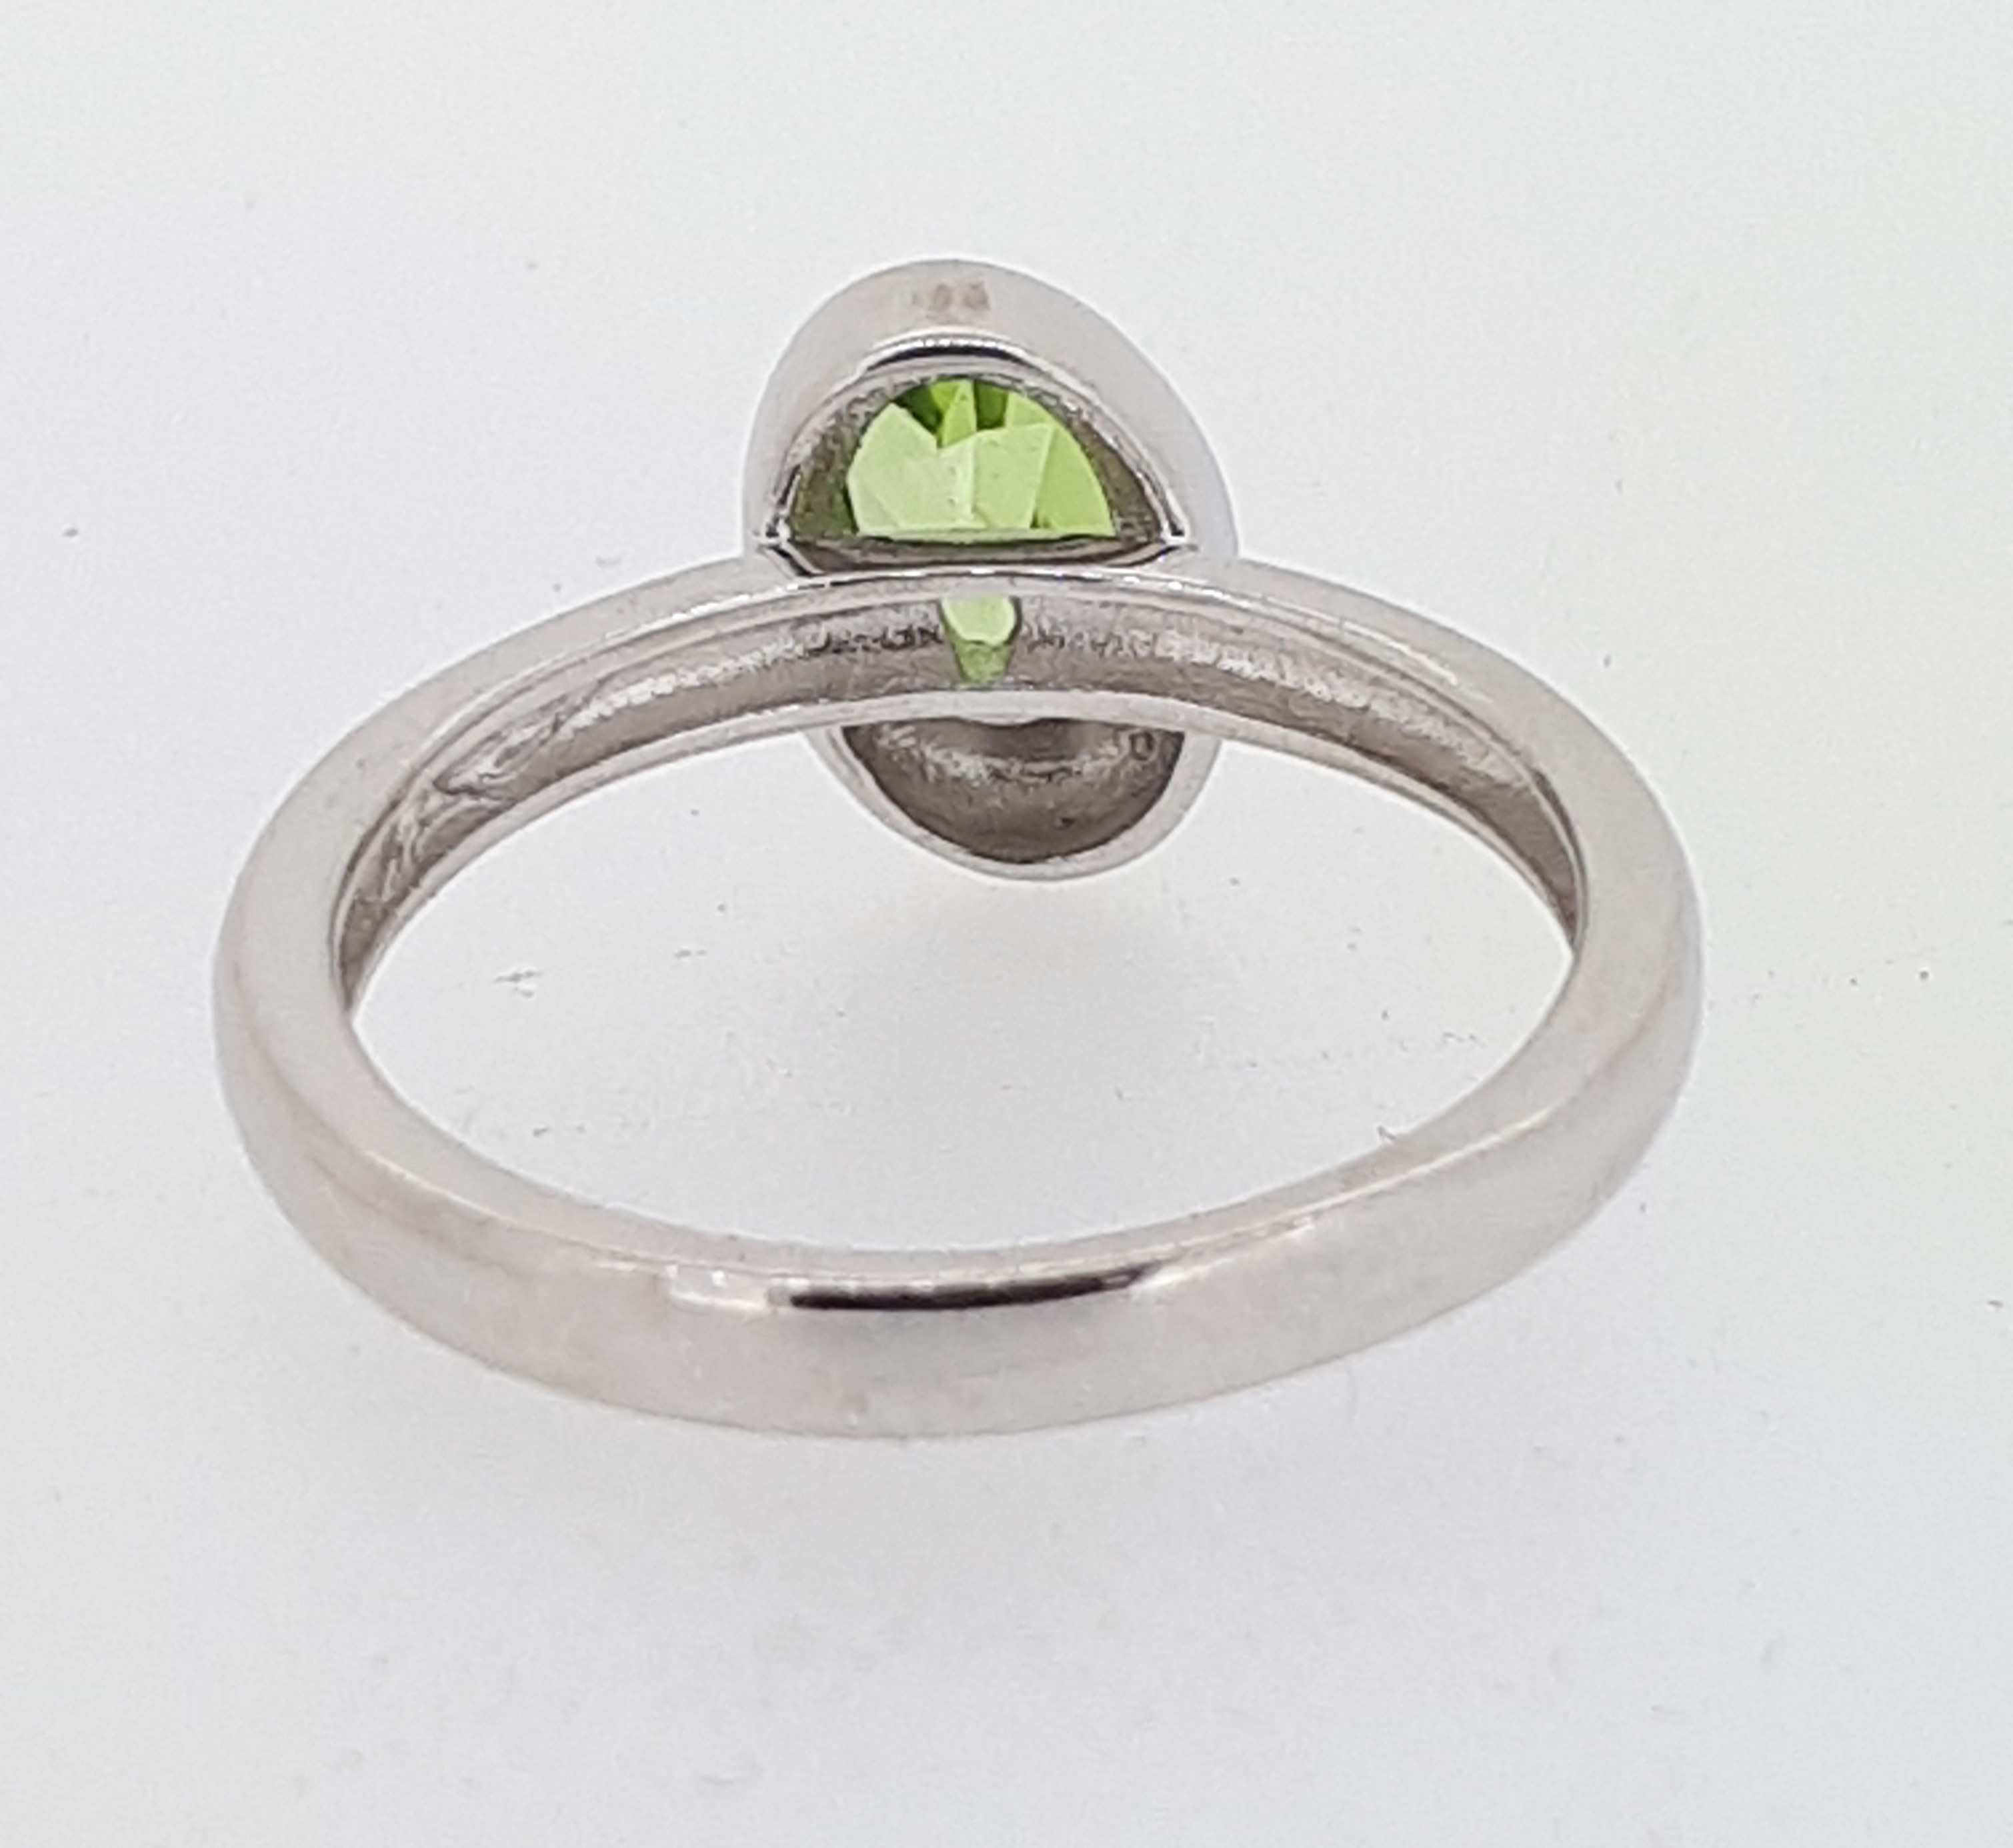 9ct (375) White Gold Oval Peridot Ring - Image 4 of 5